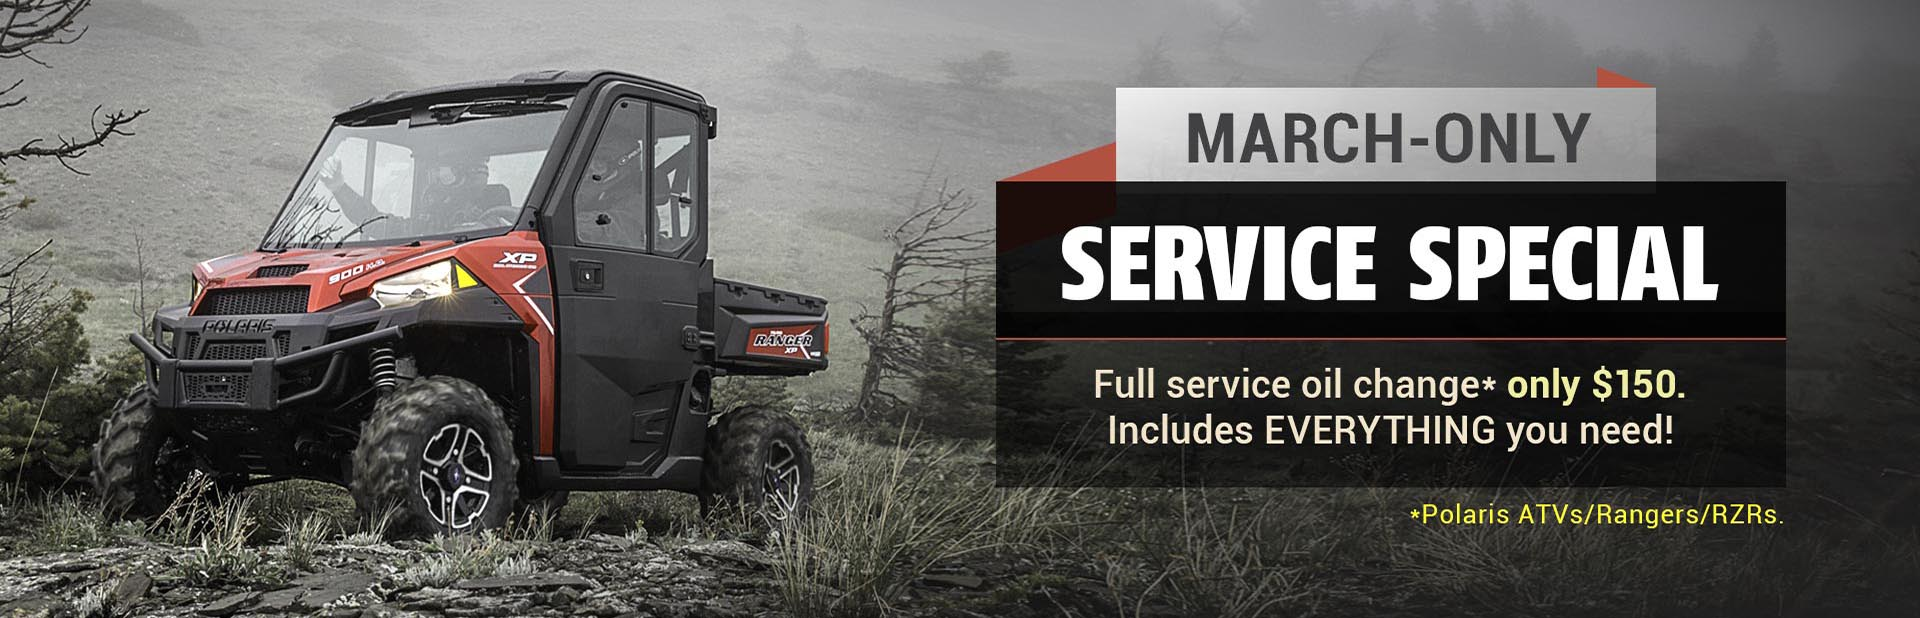 March-Only Service Special: Get a full service oil change for only $150. This includes everything you need! This offer is available for Polaris ATVs, Rangers, and RZRs. Contact us for details.